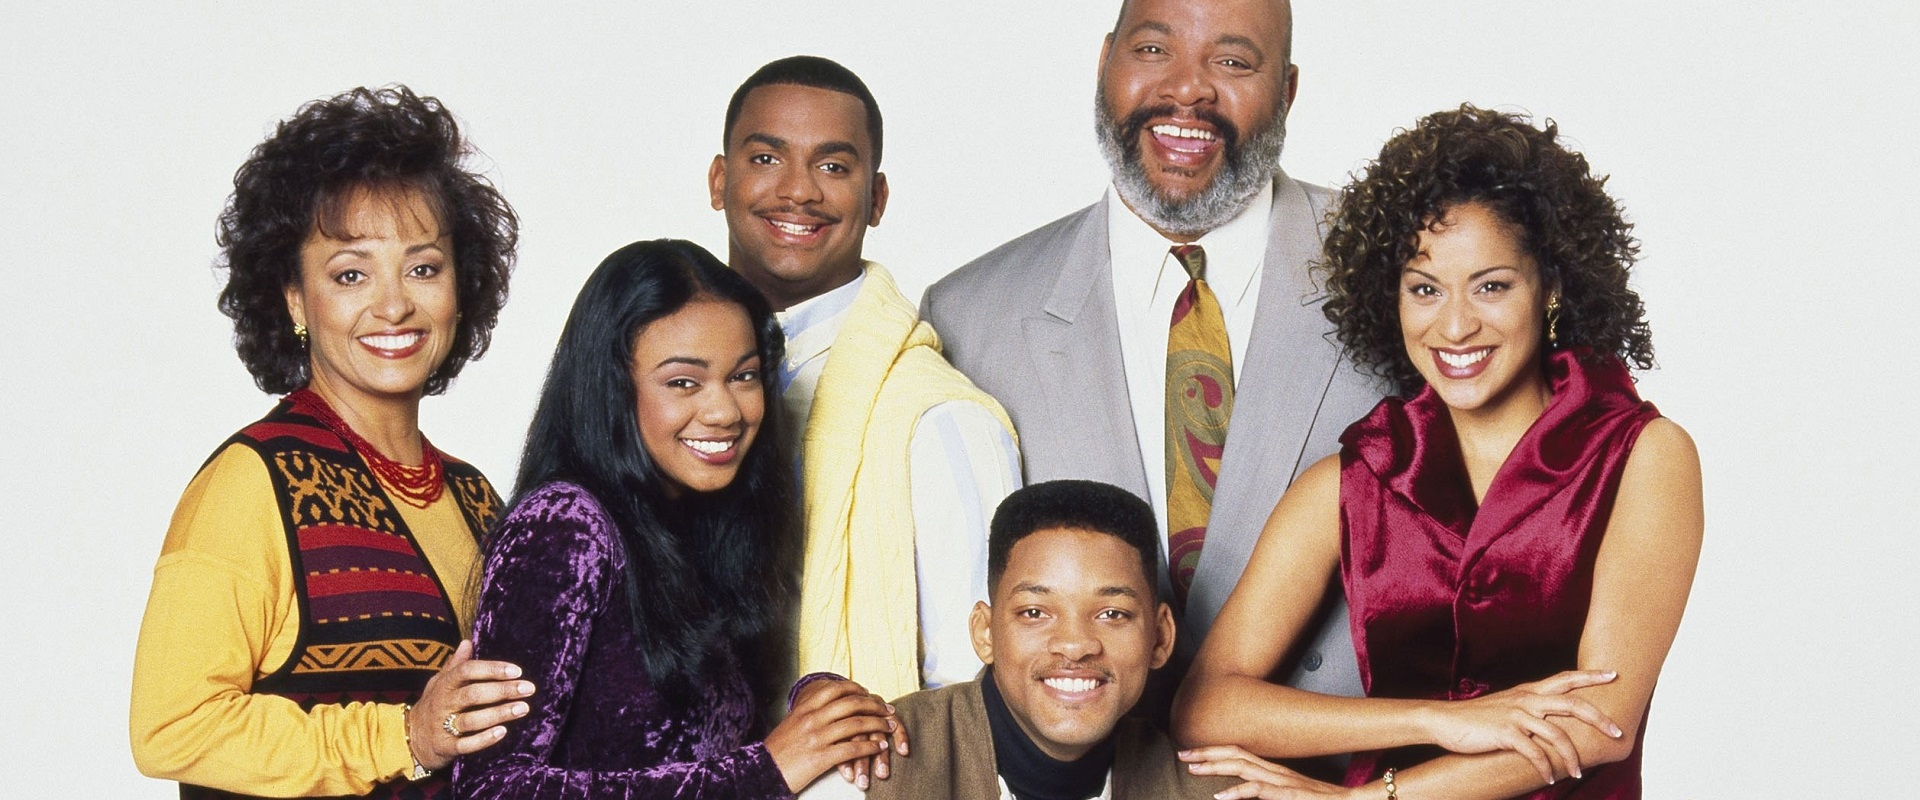 THE FRESH PRINCE OF BEL-AIR COMEBACK?